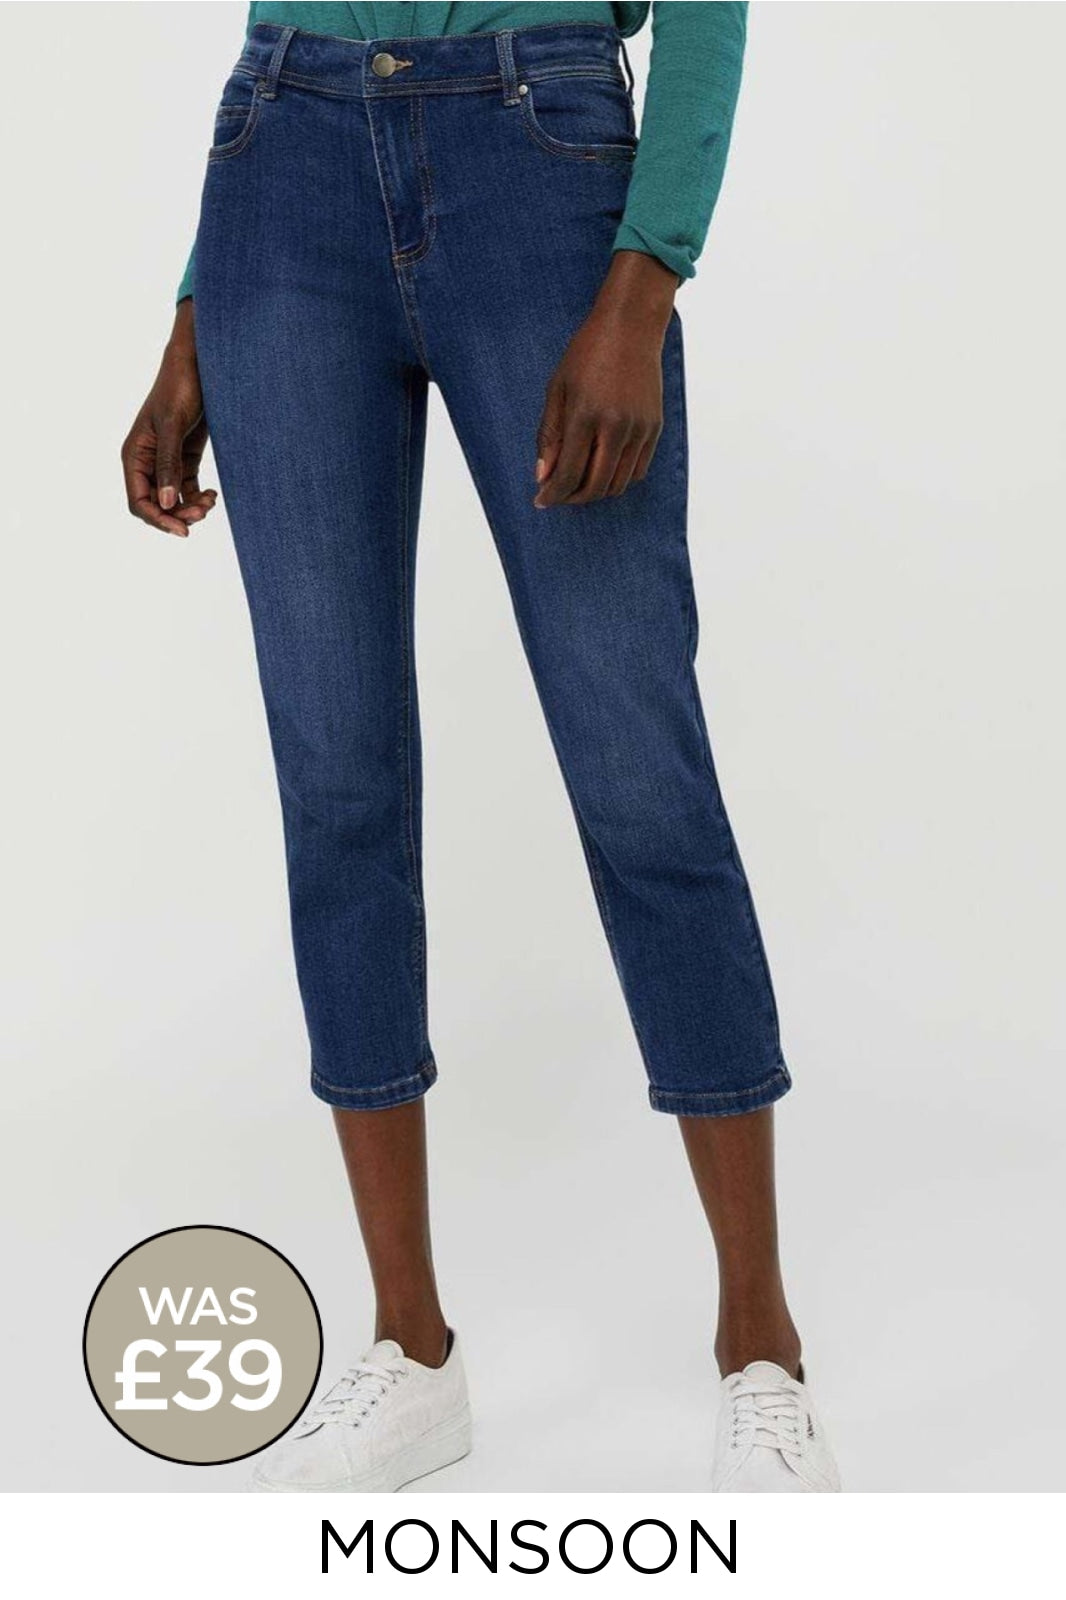 Monsoon Ex Monsoon Monsoon 'Idabella' Capri Jeans | 8 / Denim Secret Label